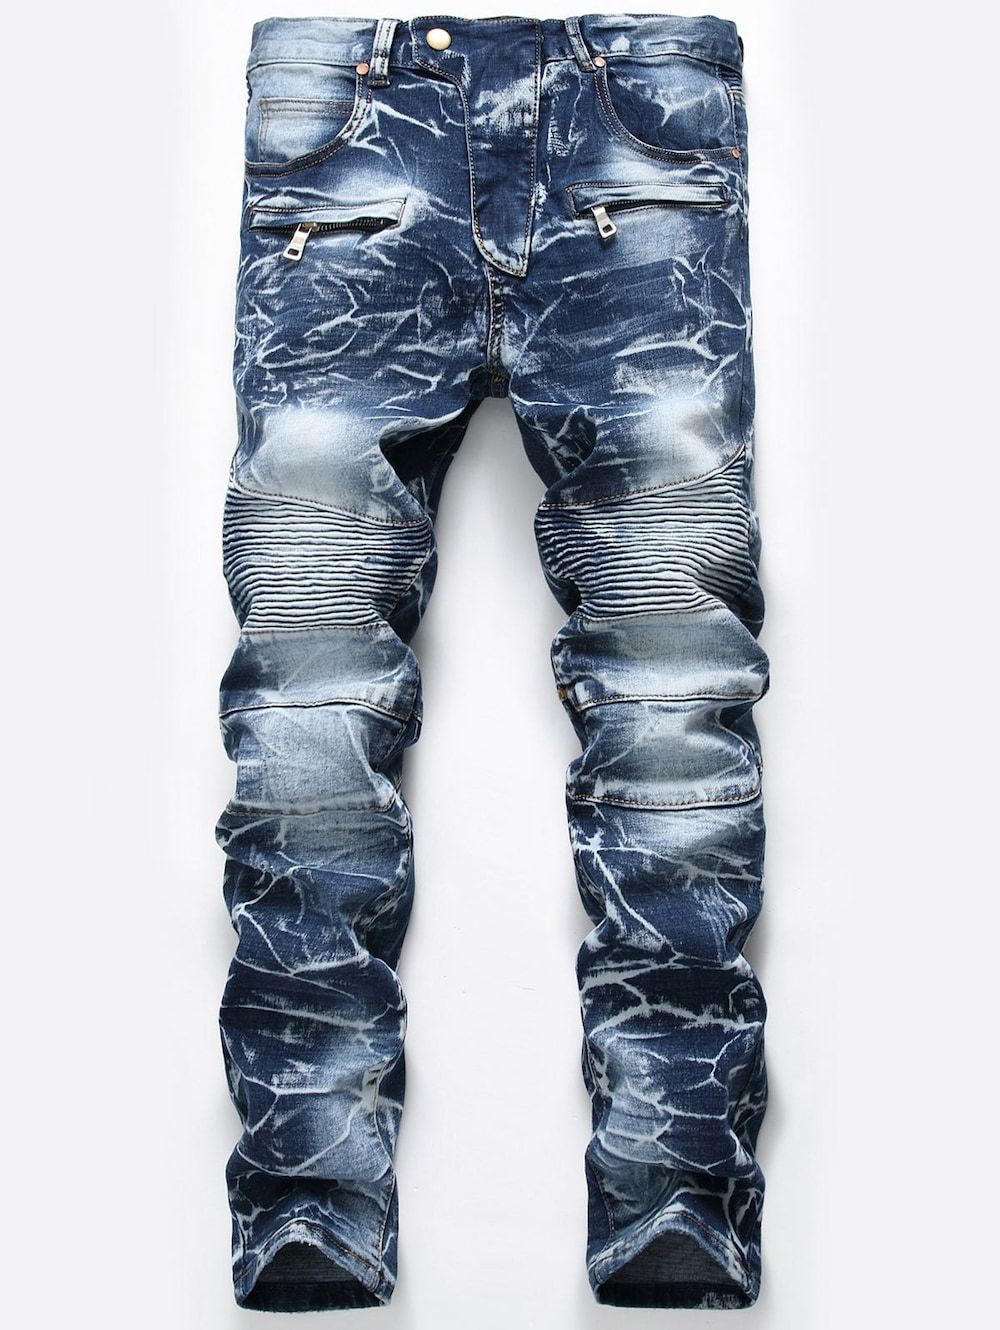 Mens Biker Jeans Retro Vintage Washed Pleated Jean Jeans